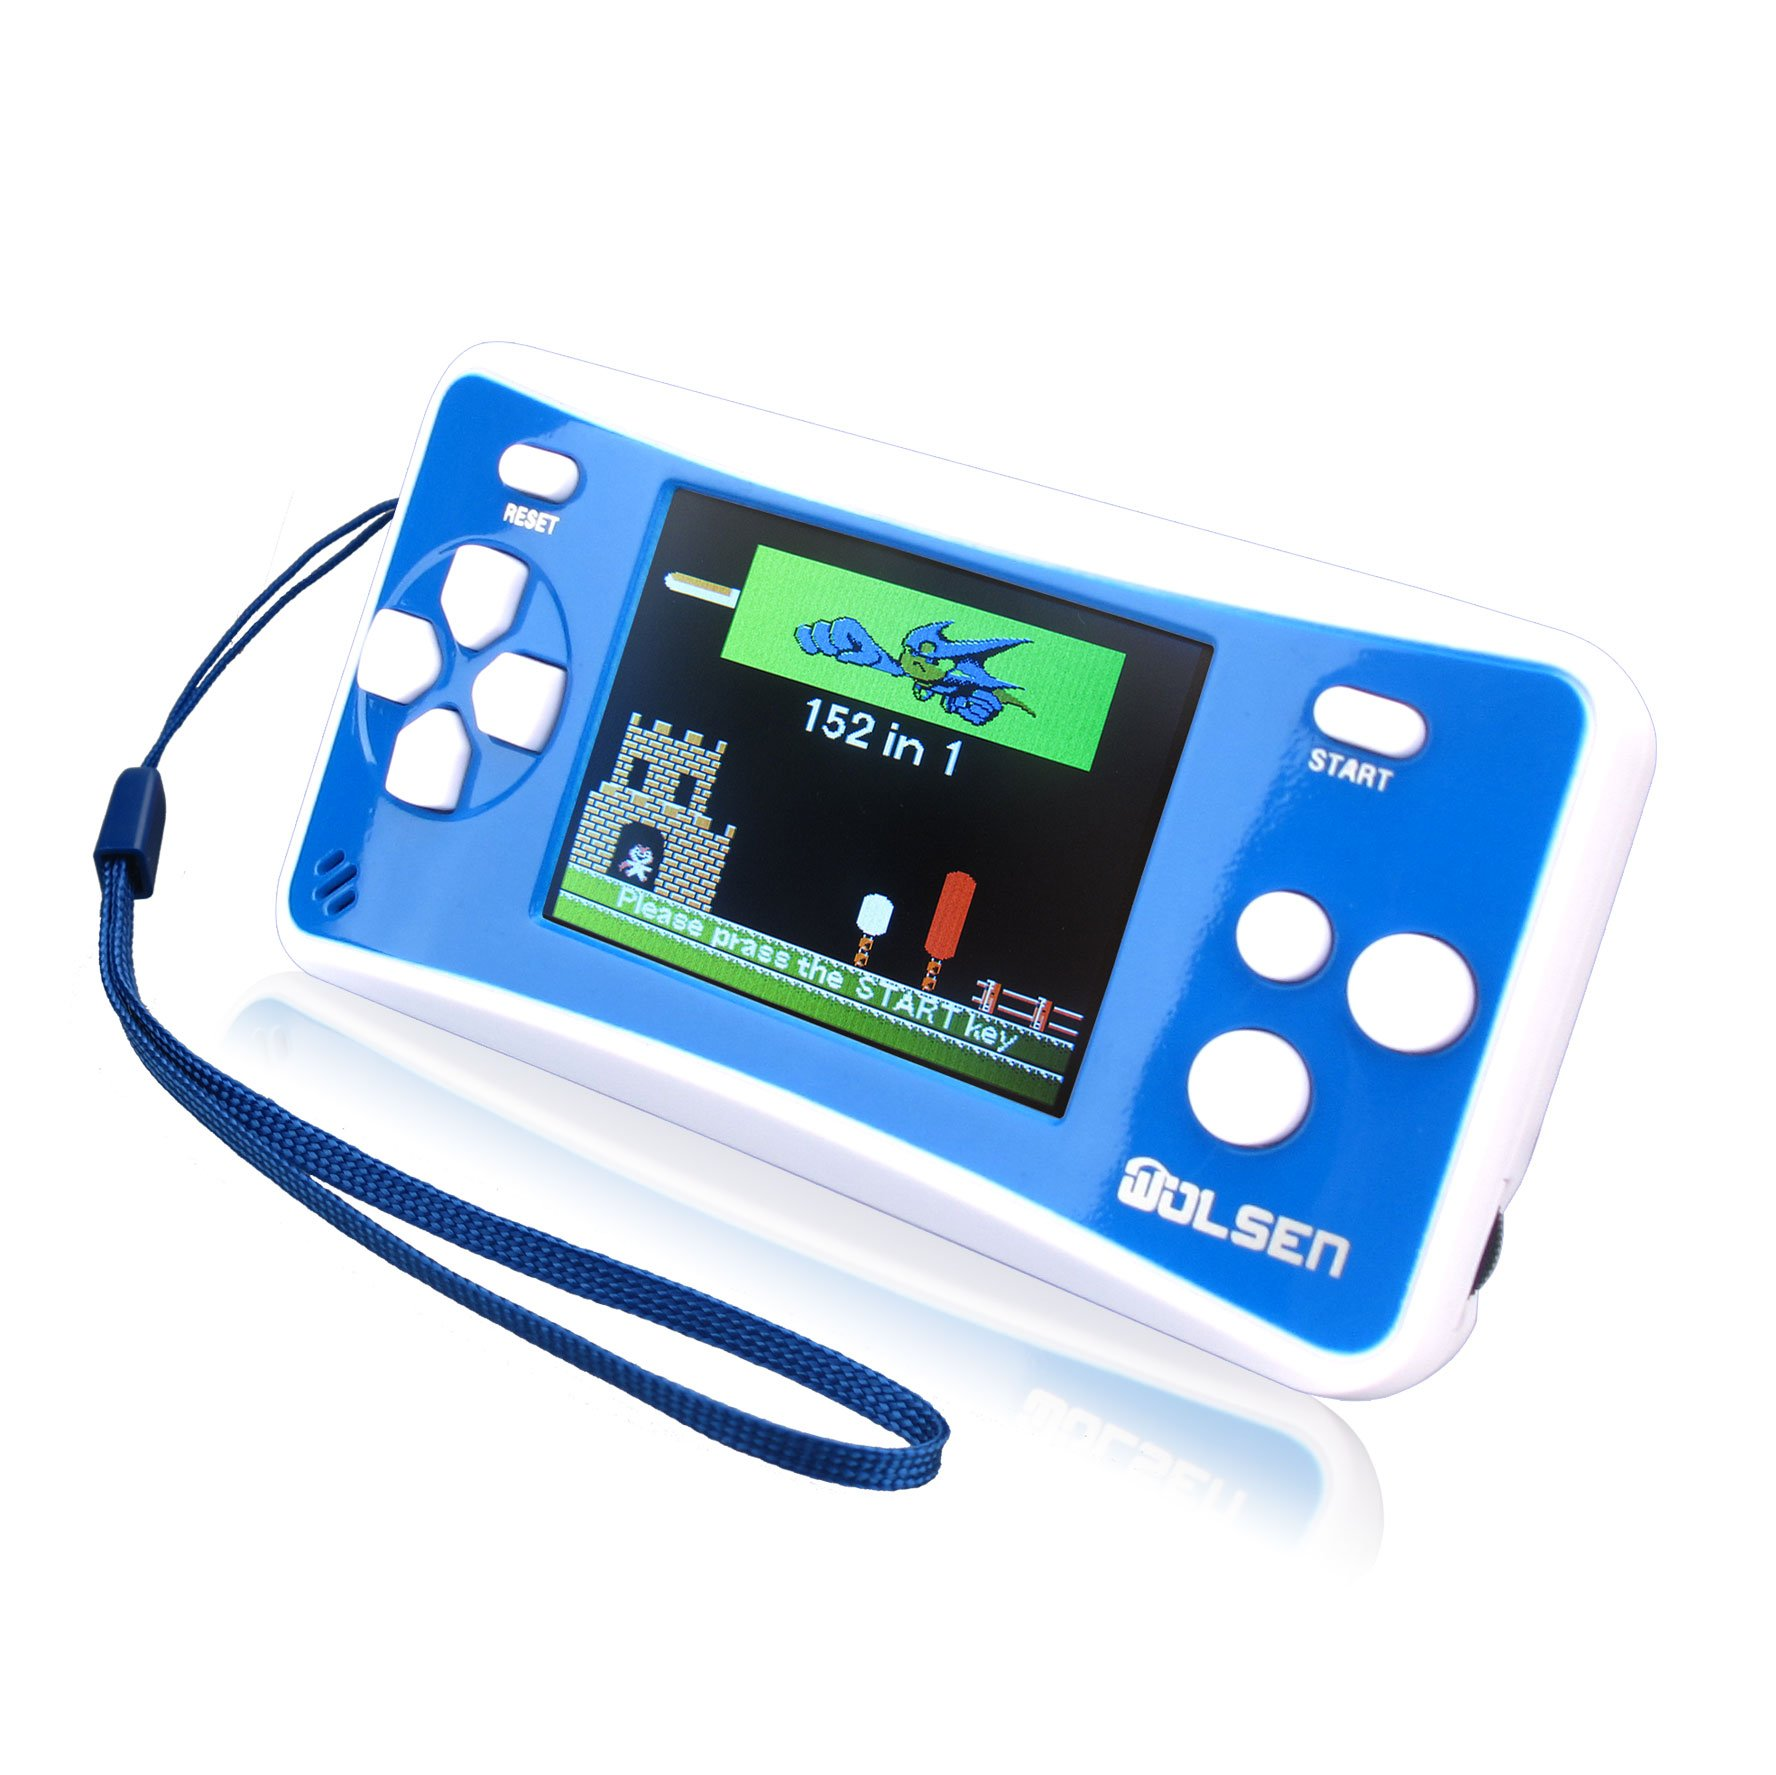 Handheld Portable Arcade Video Gaming System